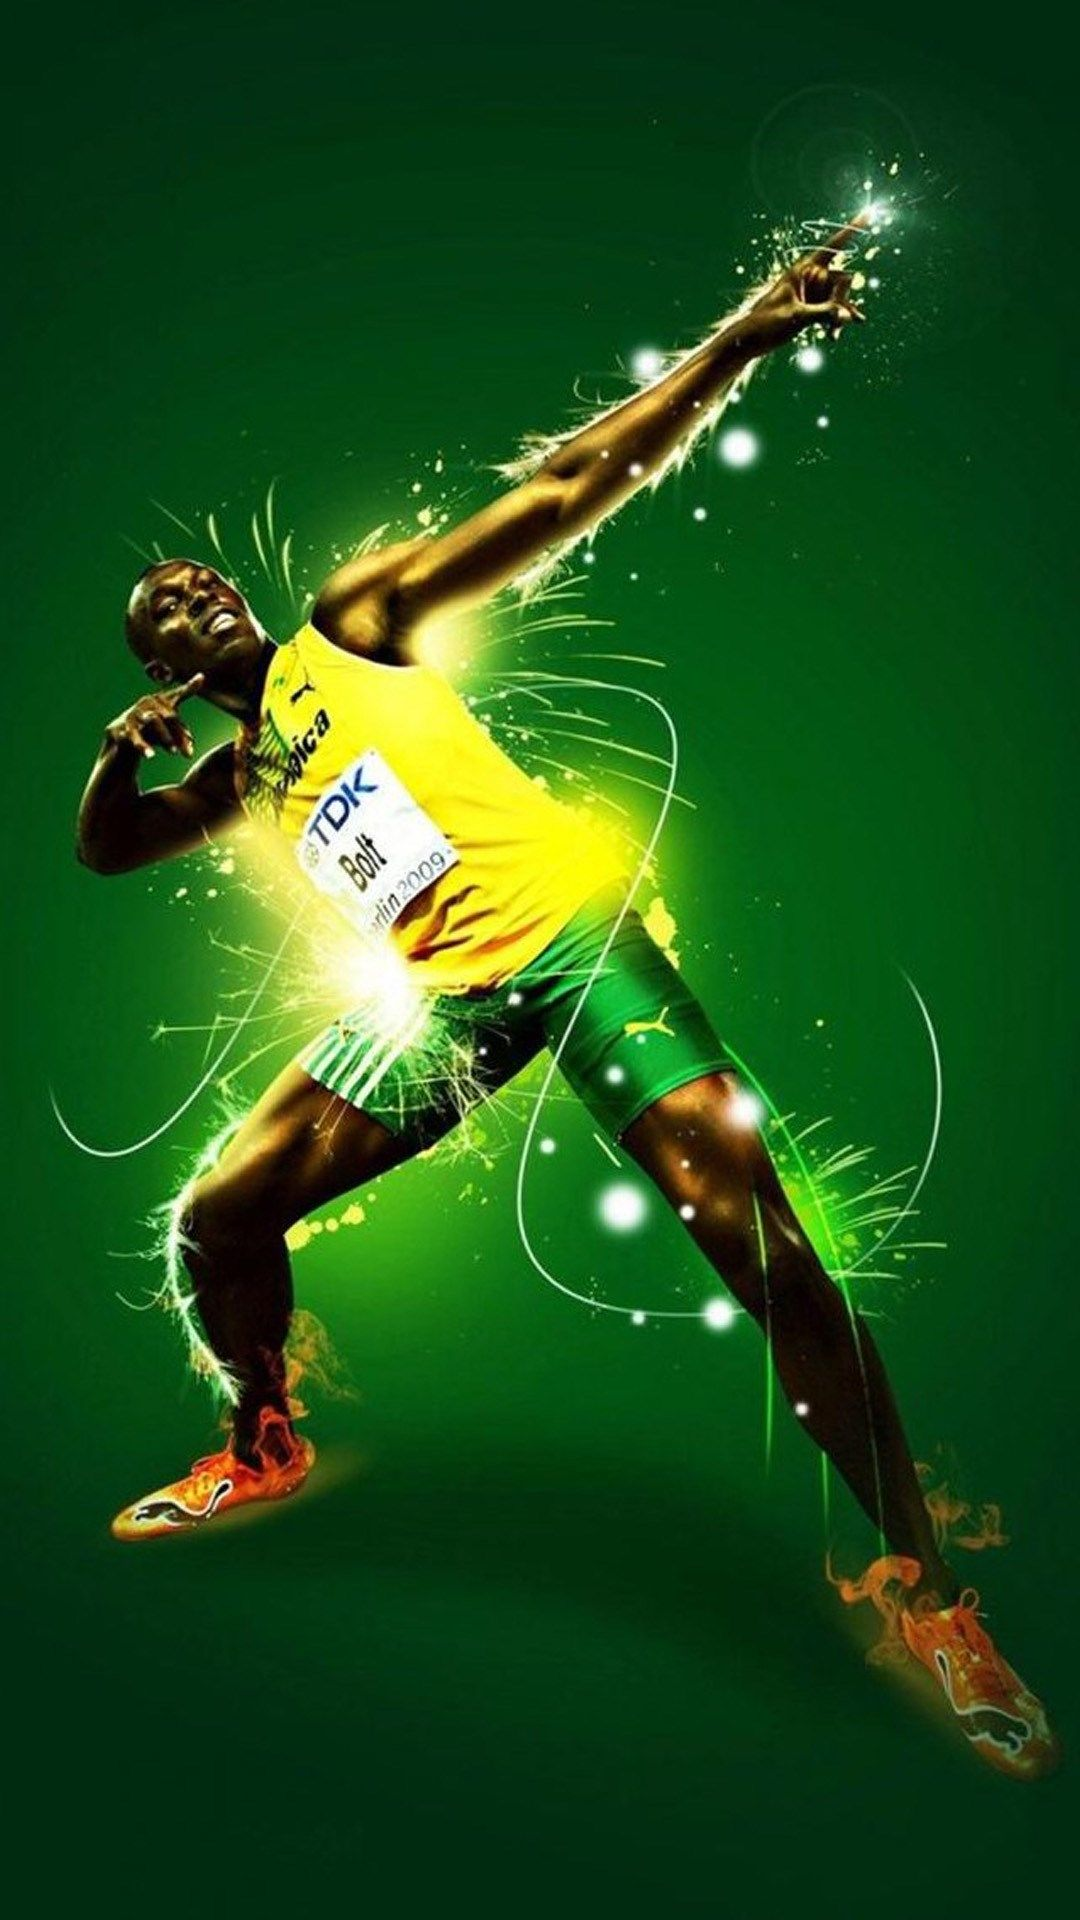 free download iphone wallpaper hd | jamajka | Usain bolt ...